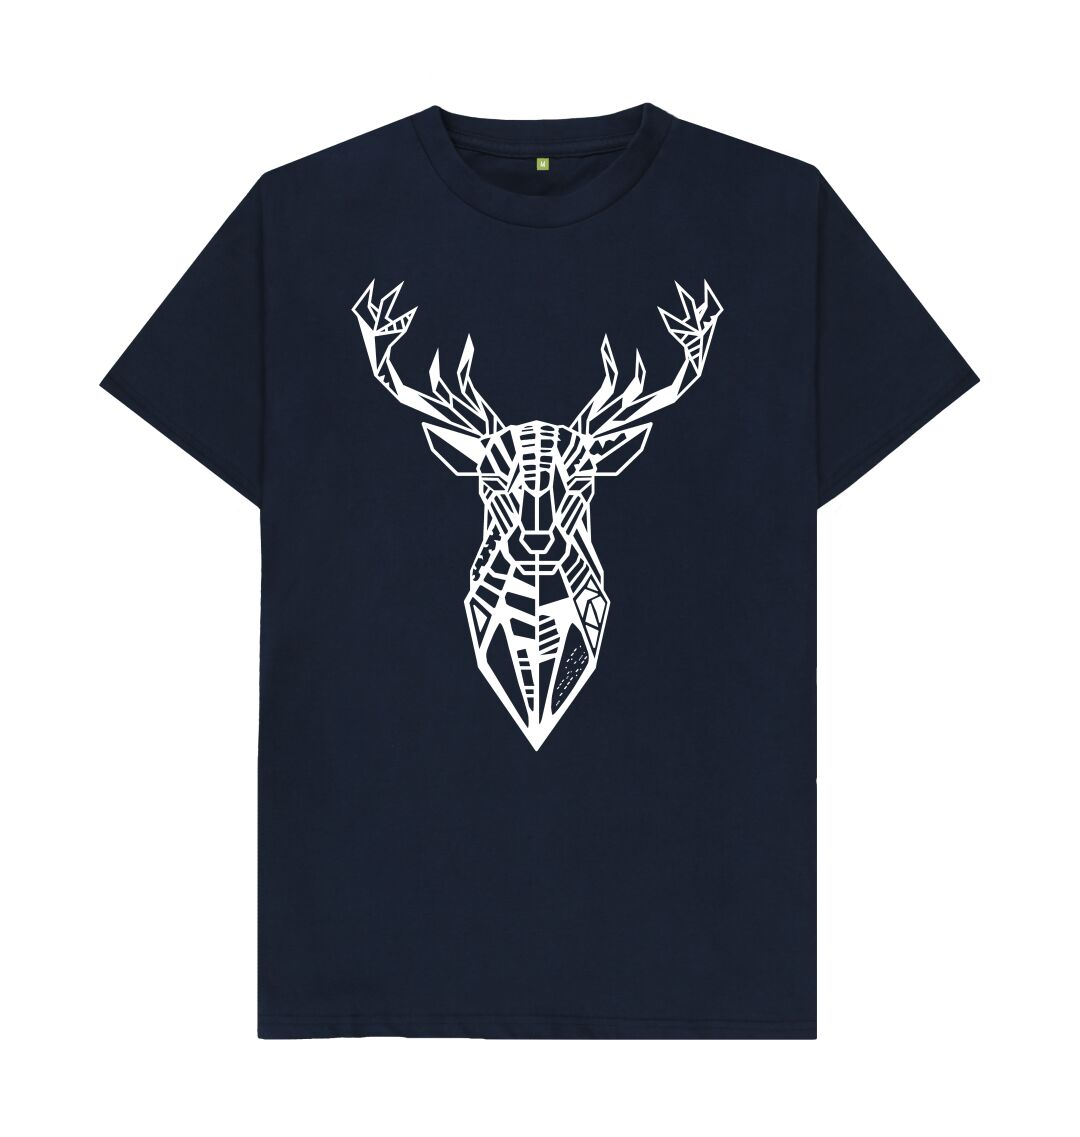 Navy Blue The Stag